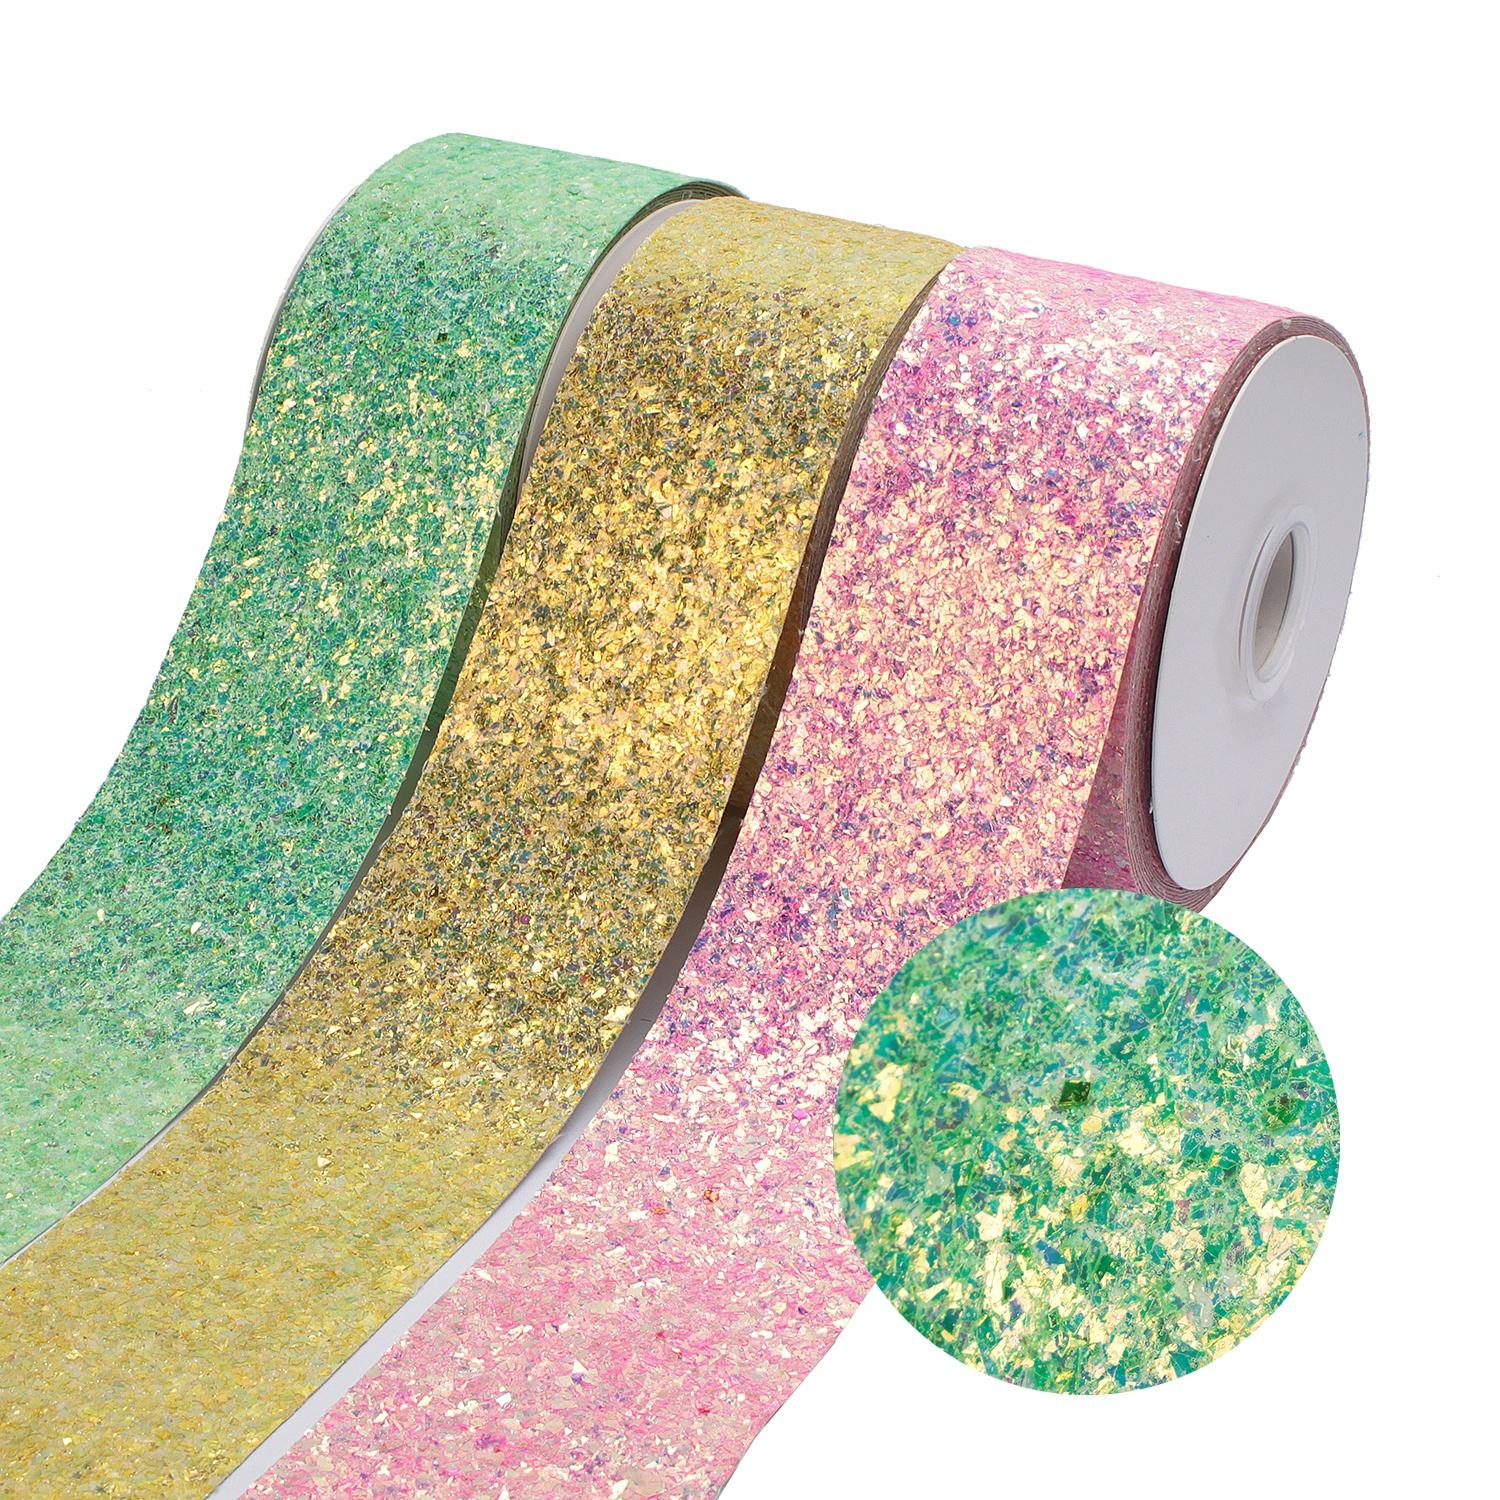 Bling Bling Chunky Printed Rolls Glitter Faux Leather Vinyl Ribbon For Hair Bows